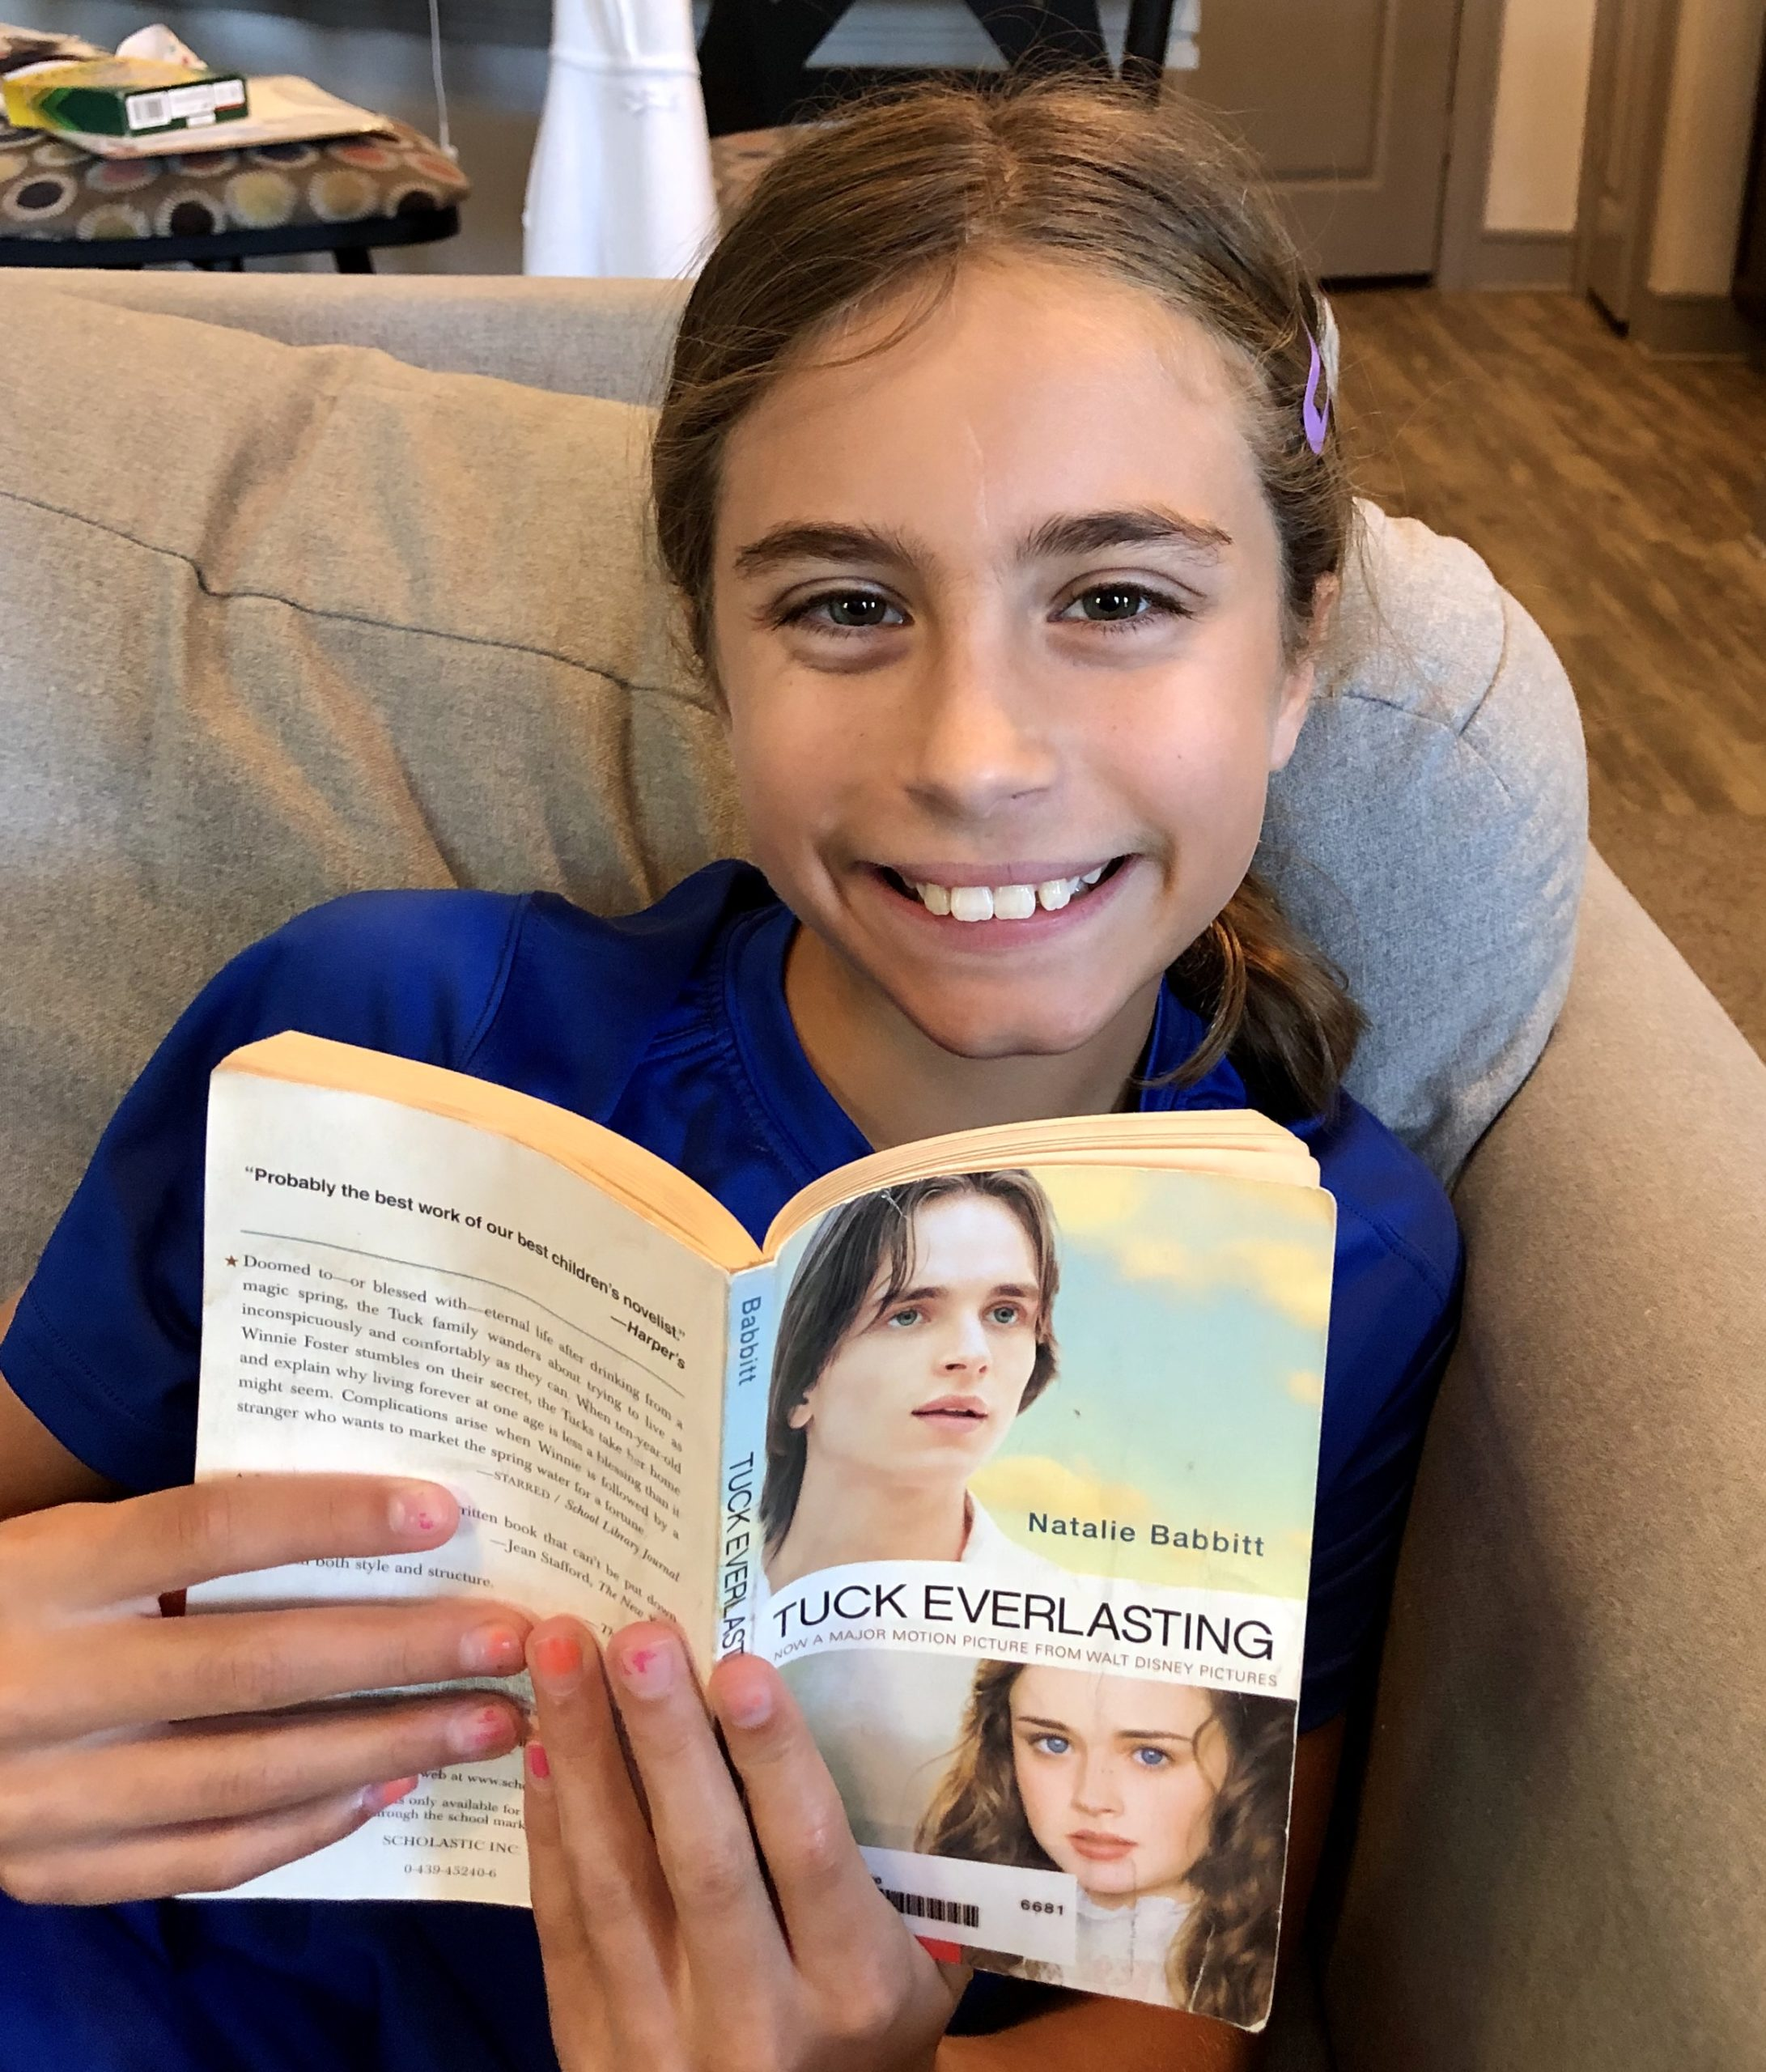 A young girl smiling at the camera, while holding the book Tuck Everlasting by Natalie Babbitt for a children's Book Review by Kandblife.com